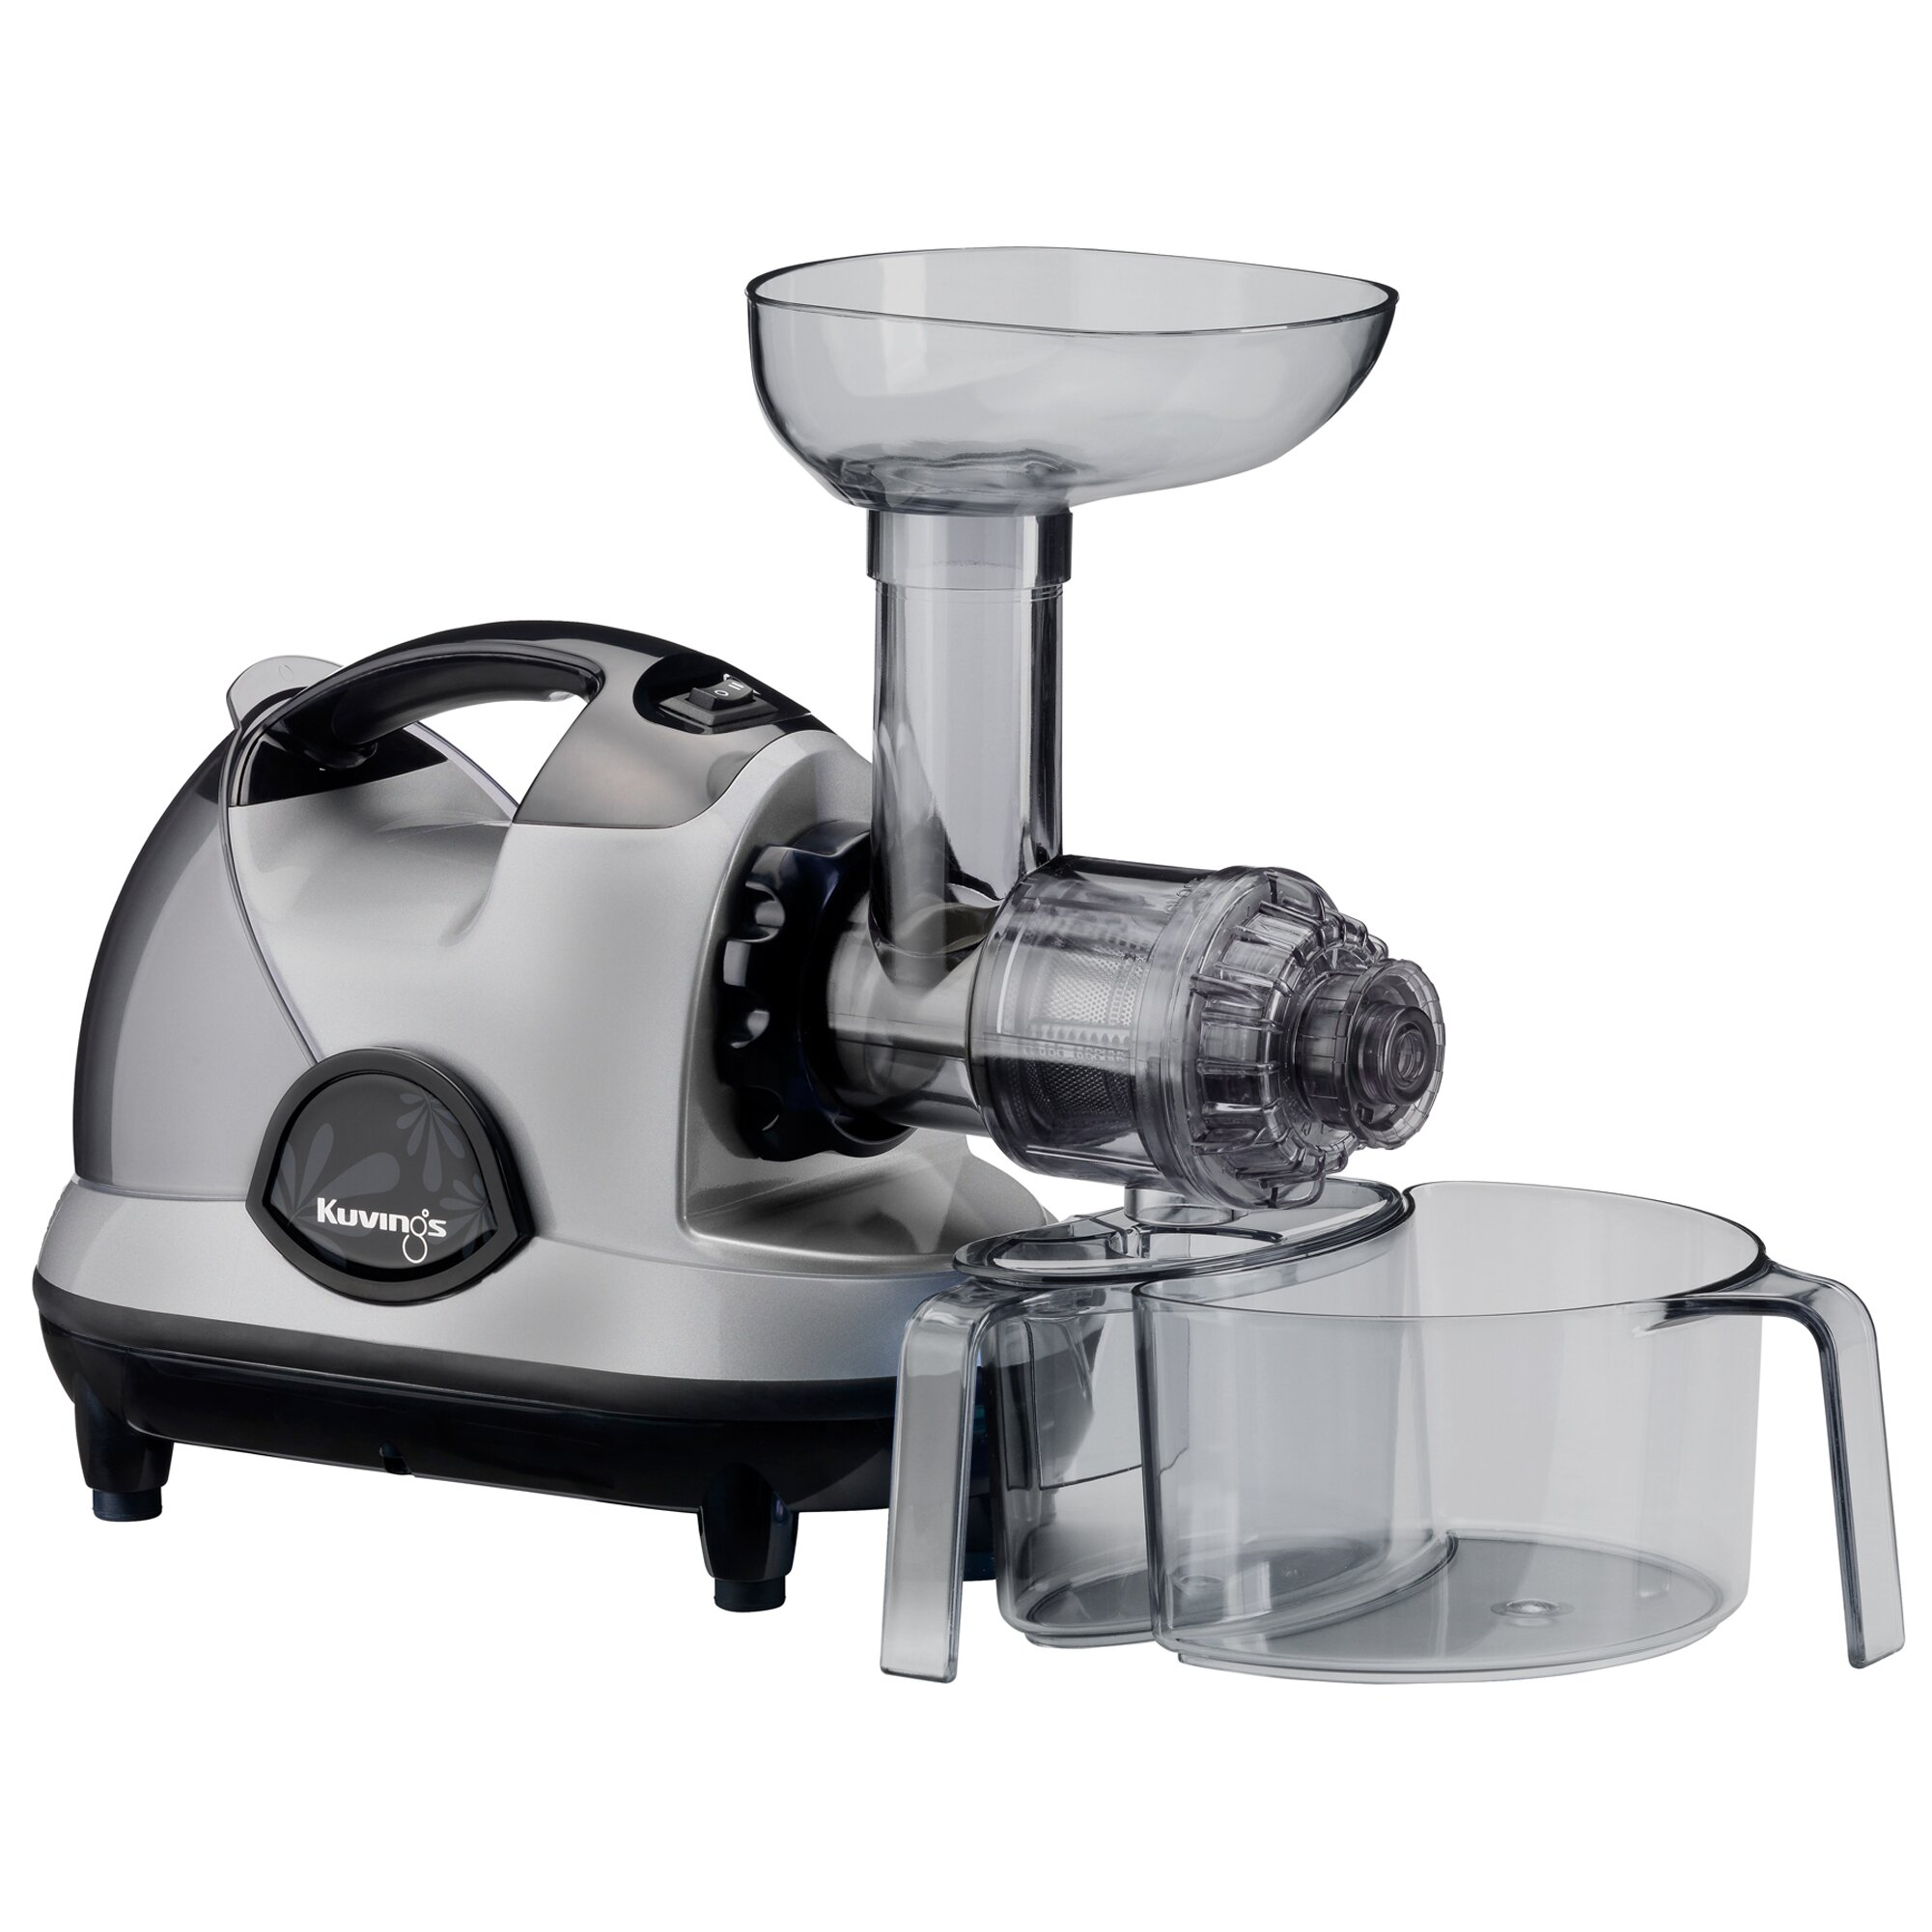 Healthy Living Slow Juicer Review : KUvINGS Multi-Purpose Slow Juicer & Reviews Wayfair